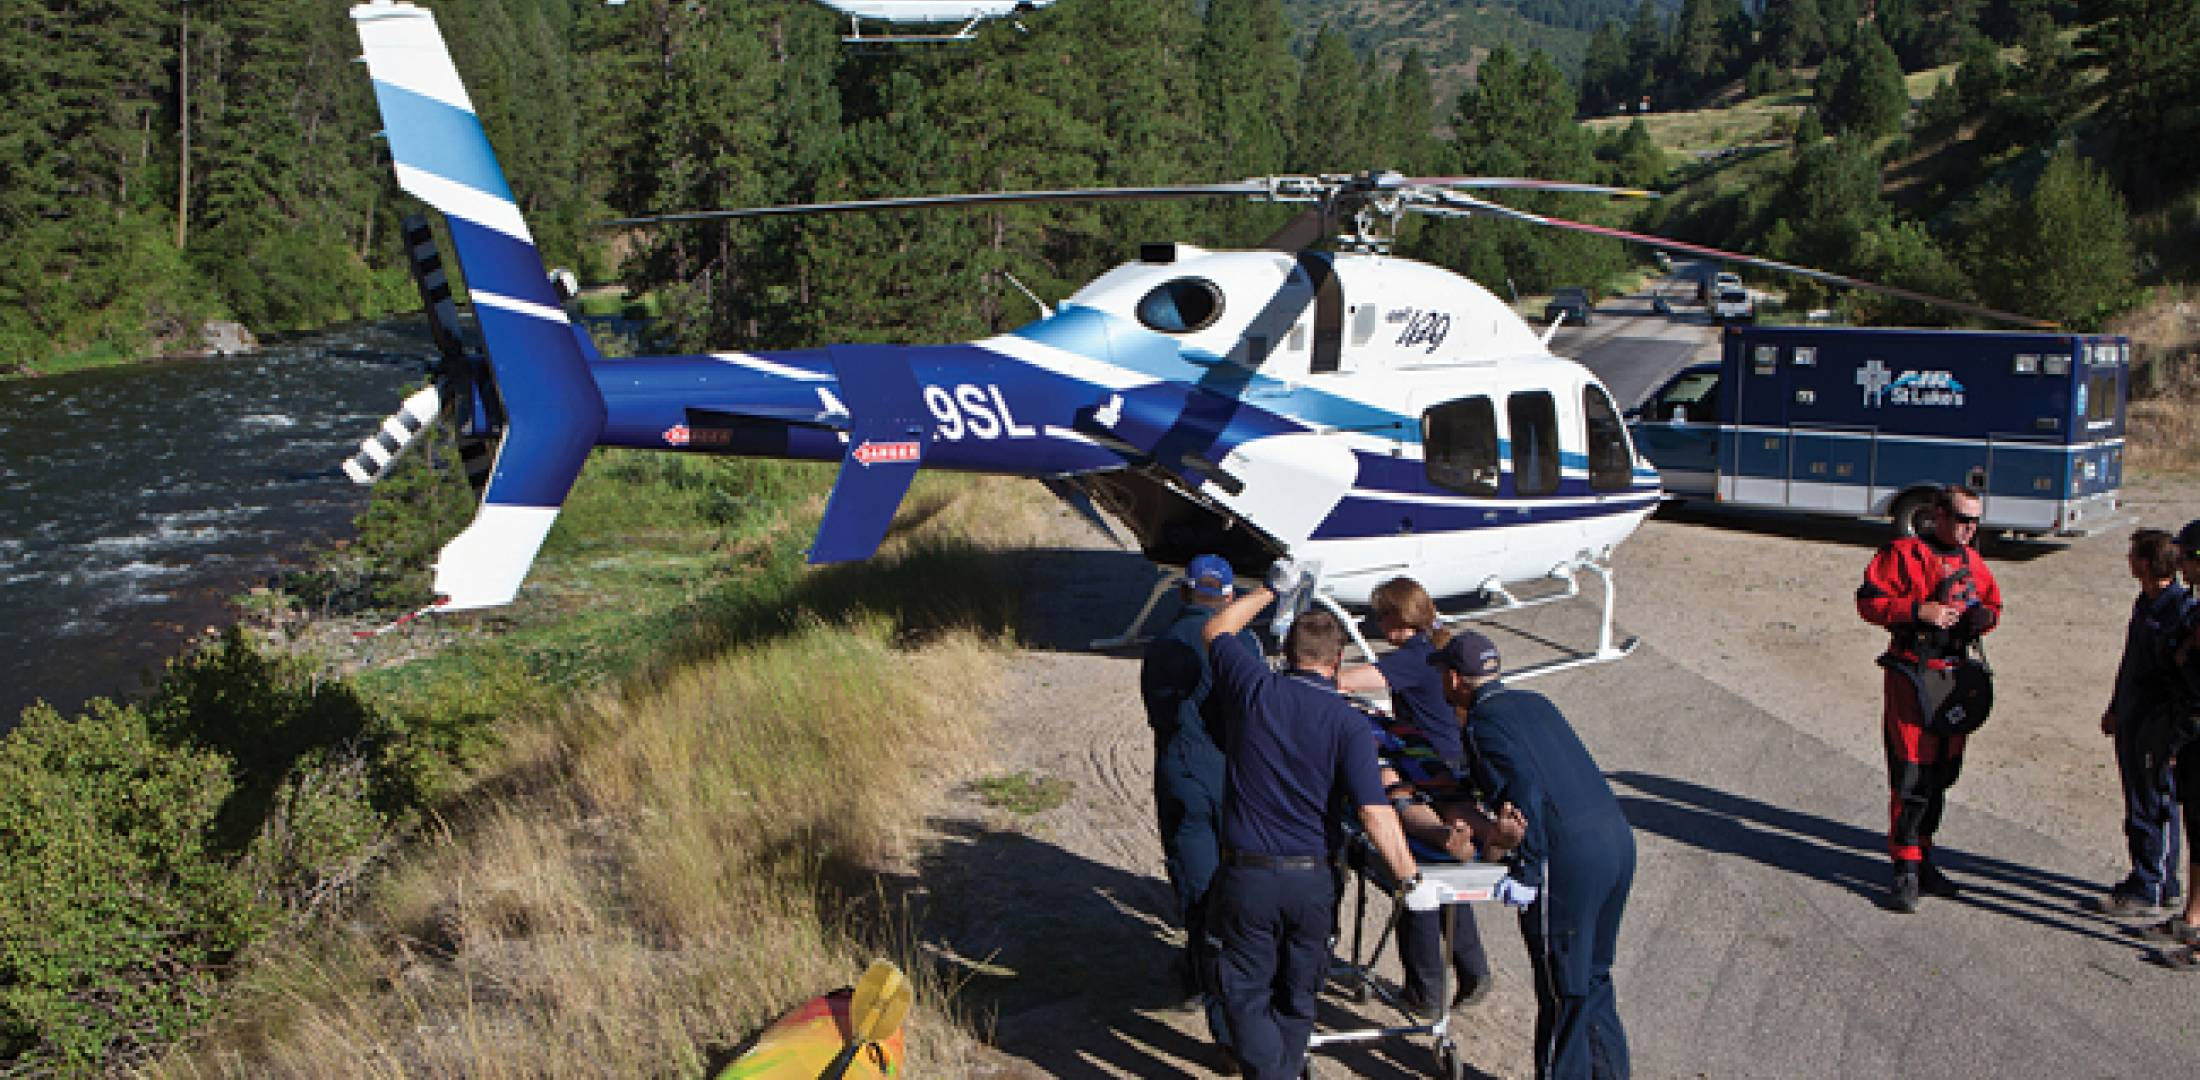 The helicopter EMS industry and the FAA have been working together to improve safety.